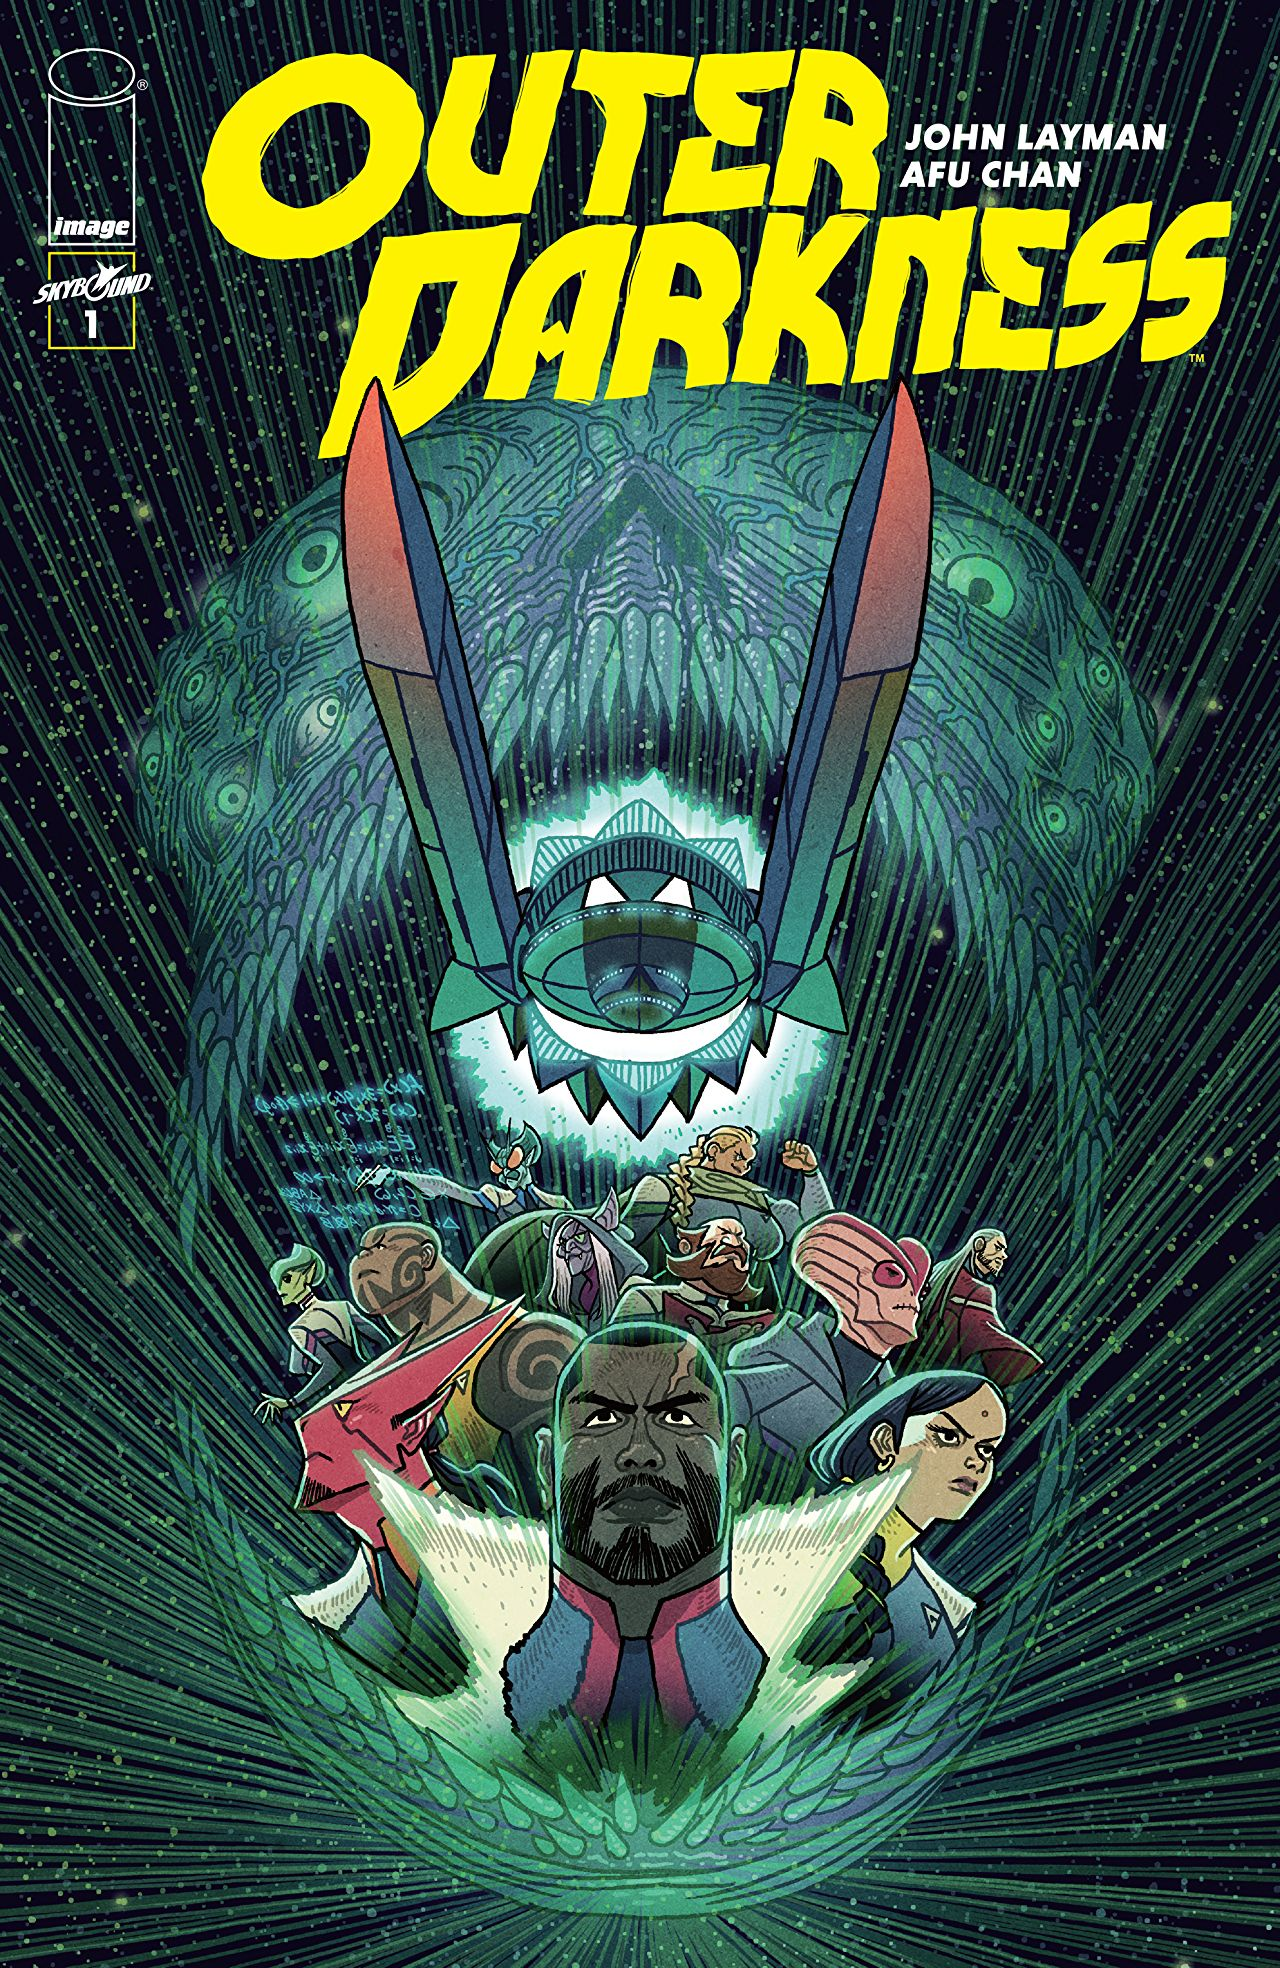 Outer Darkness #1 Review: Simply good sci-fi